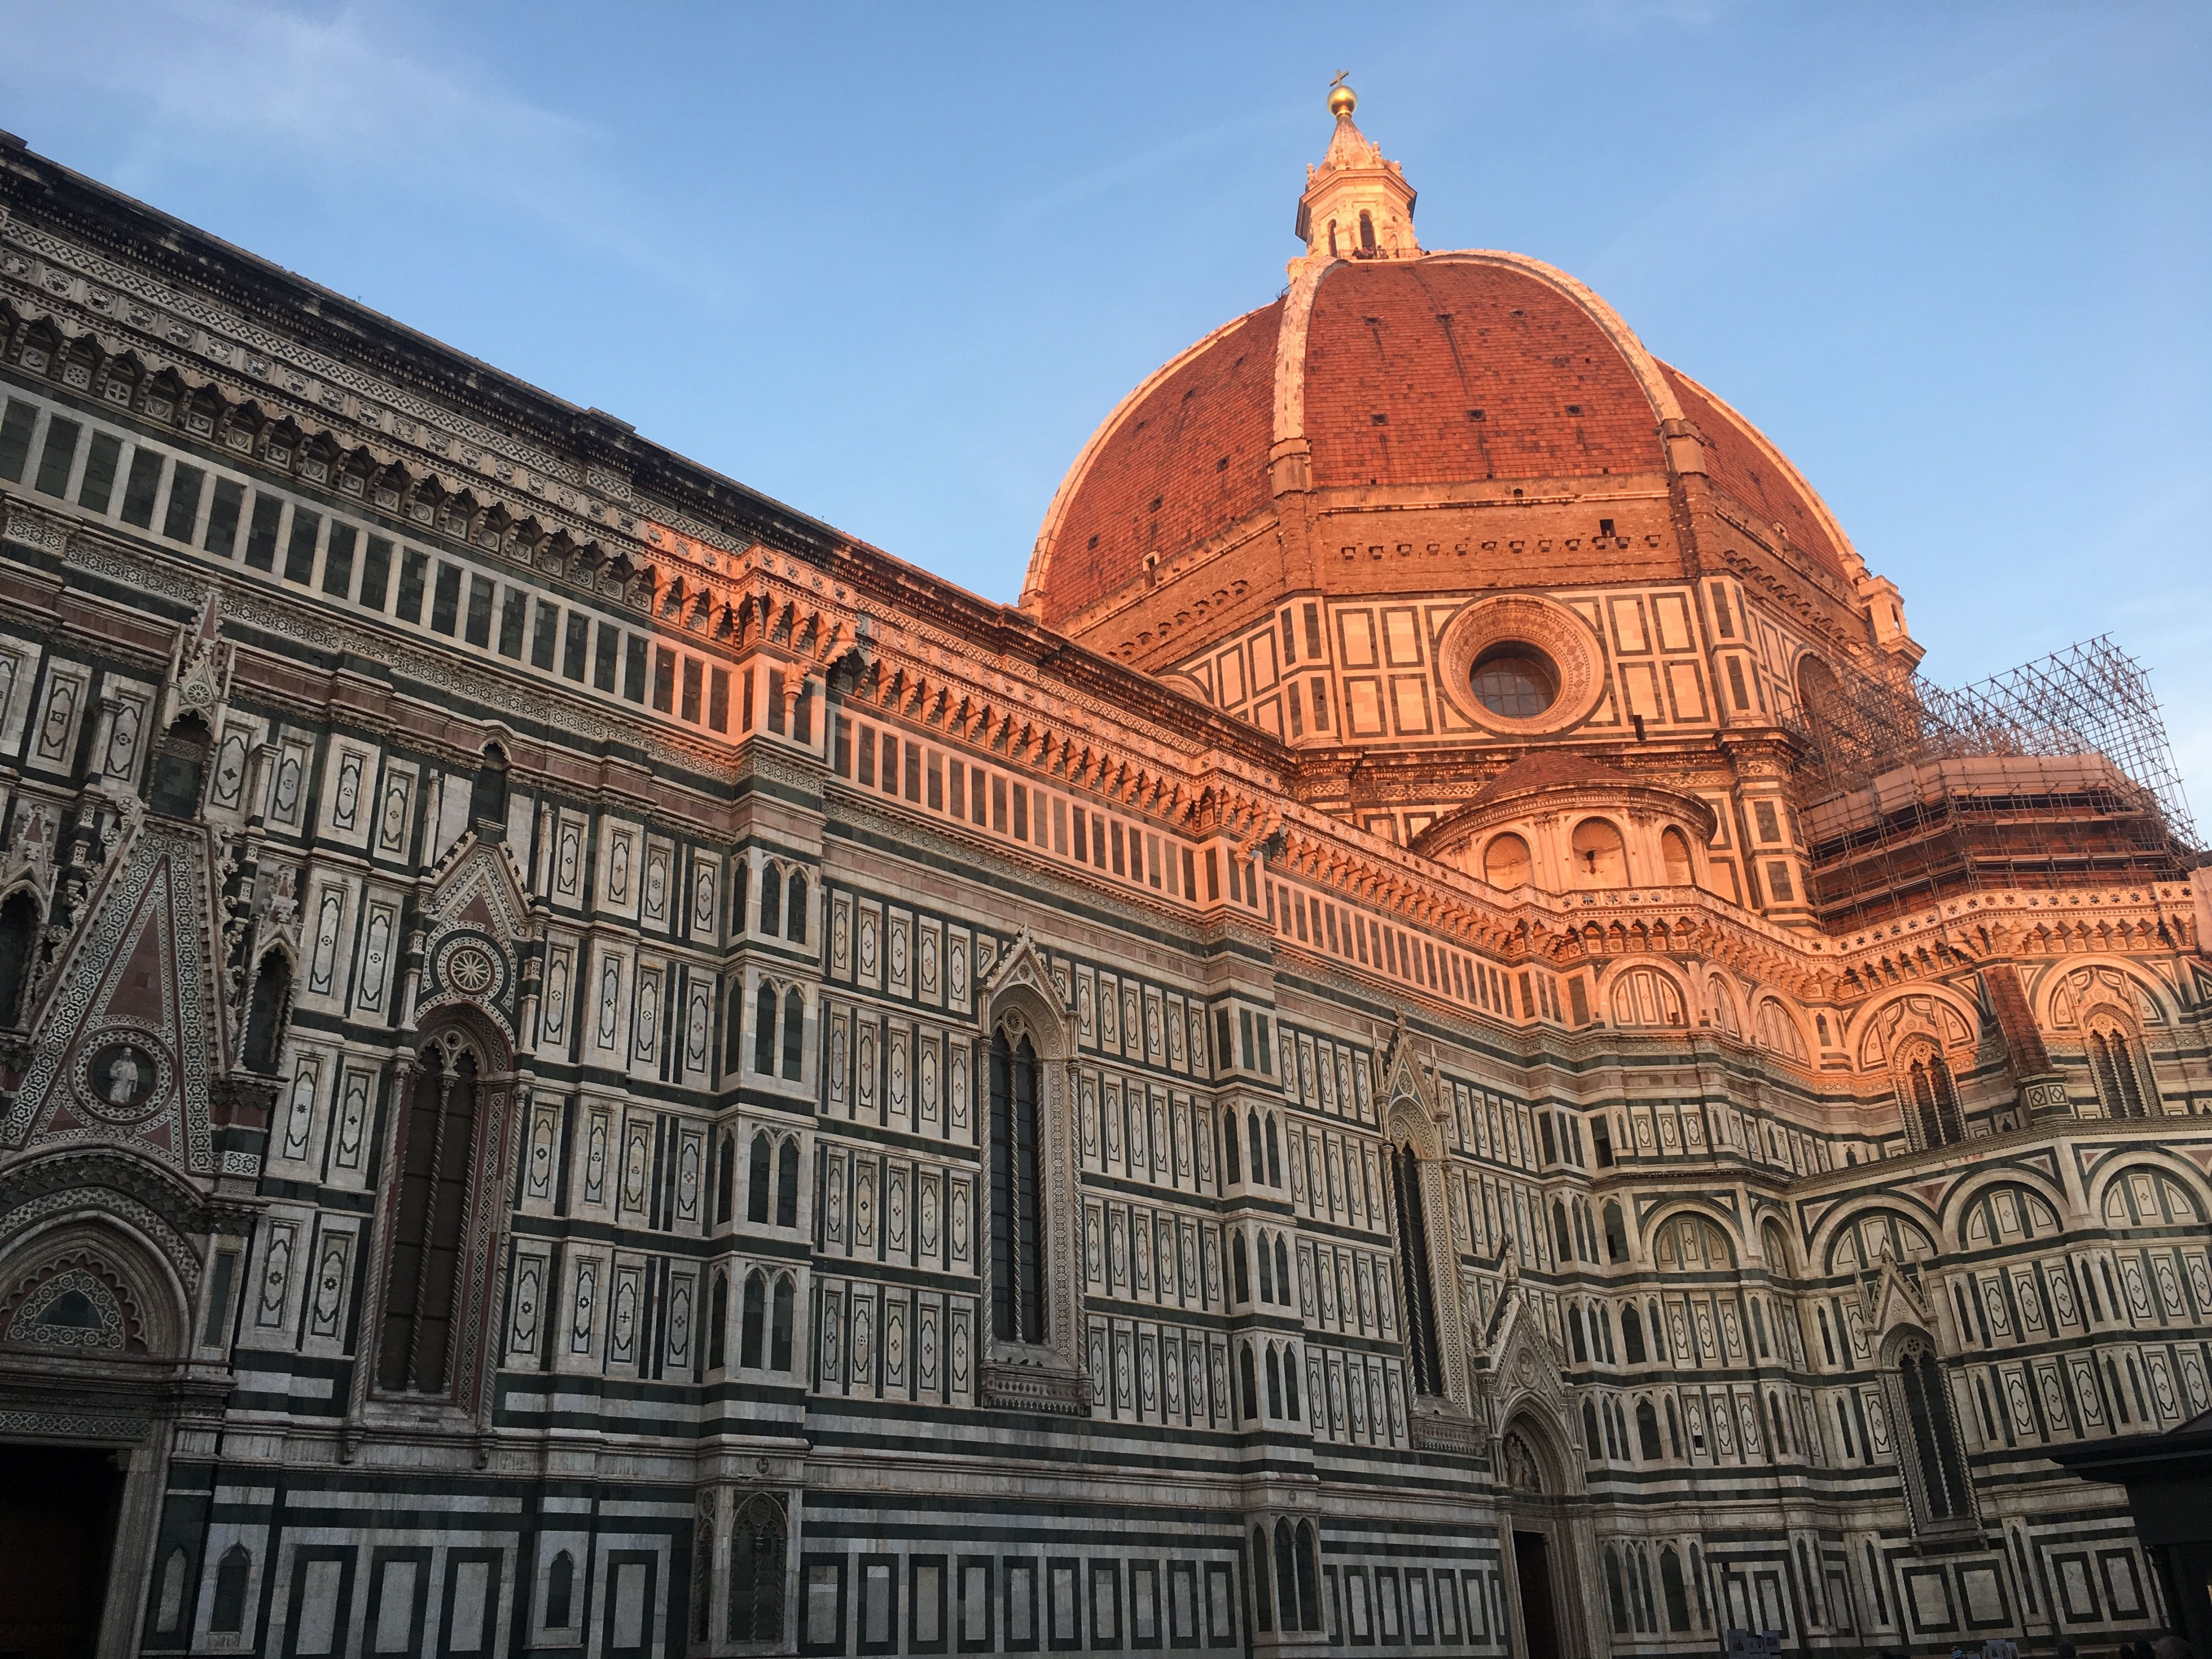 Duomo of Florence, Italy